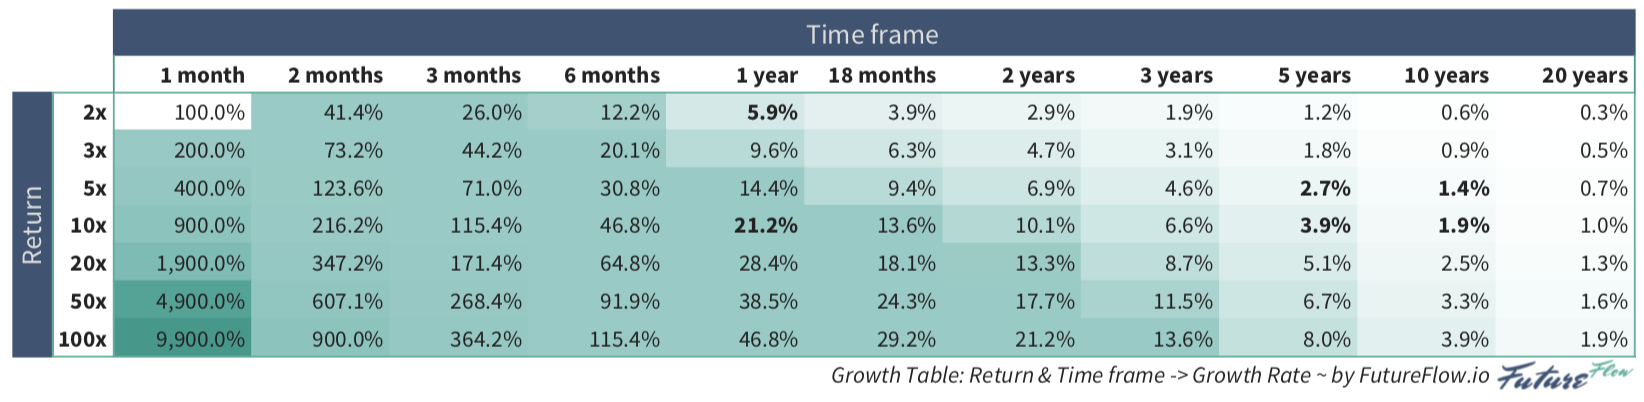 Growth Table: Return and Time to needed Growth